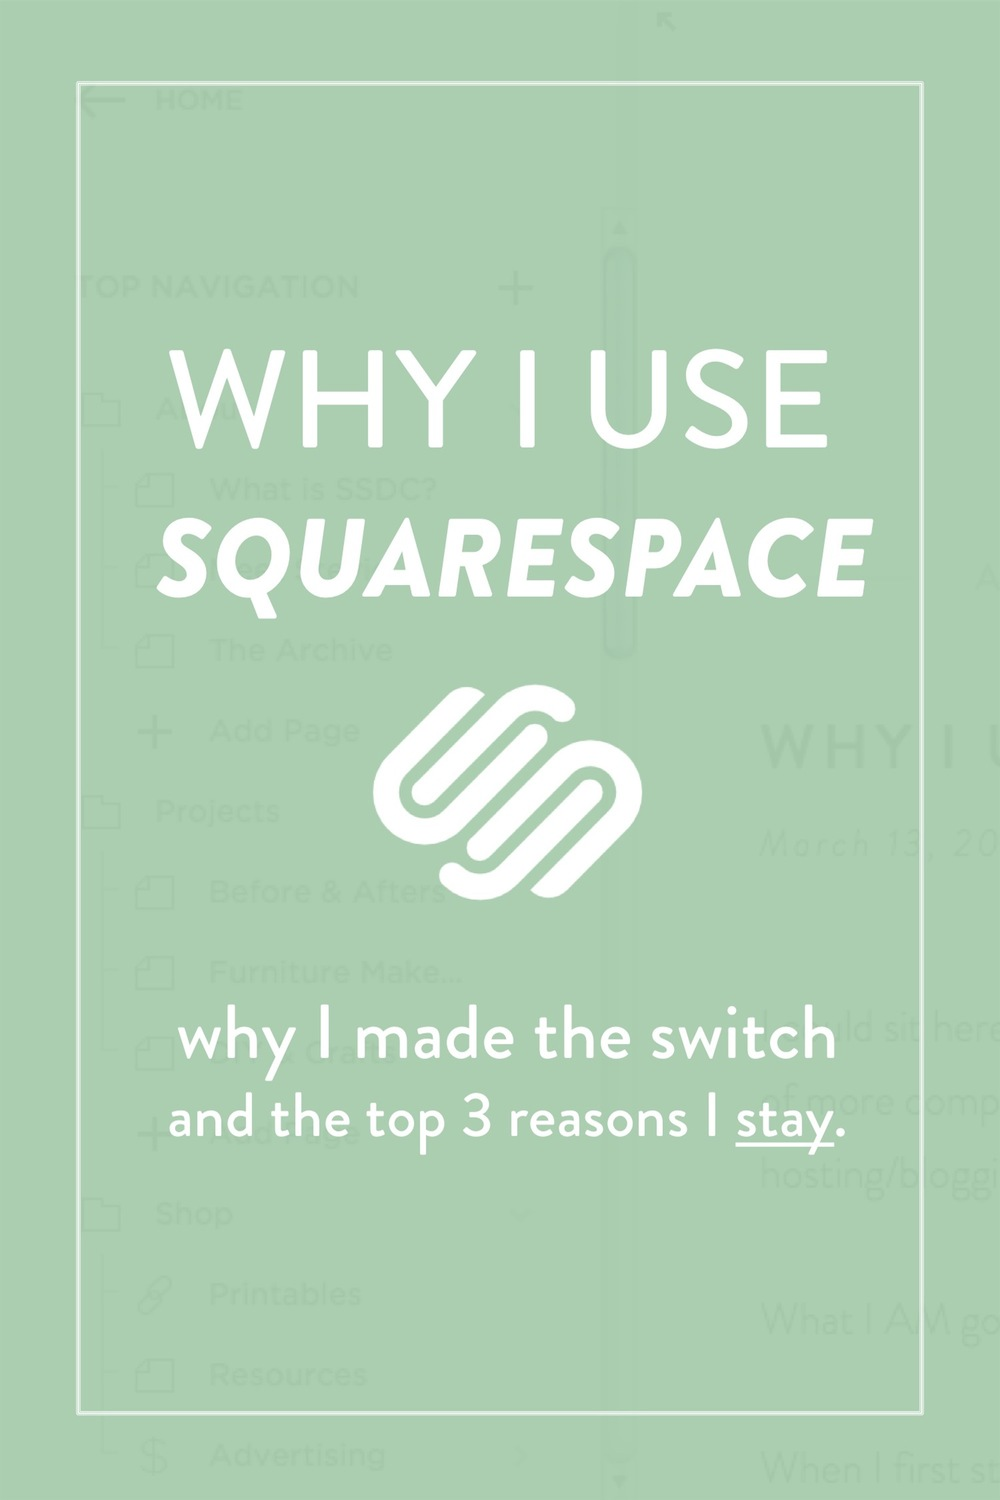 Blogging Tips : Why I use Squarespace and the 3 things that keep me there - Stevie Storck Design Co.